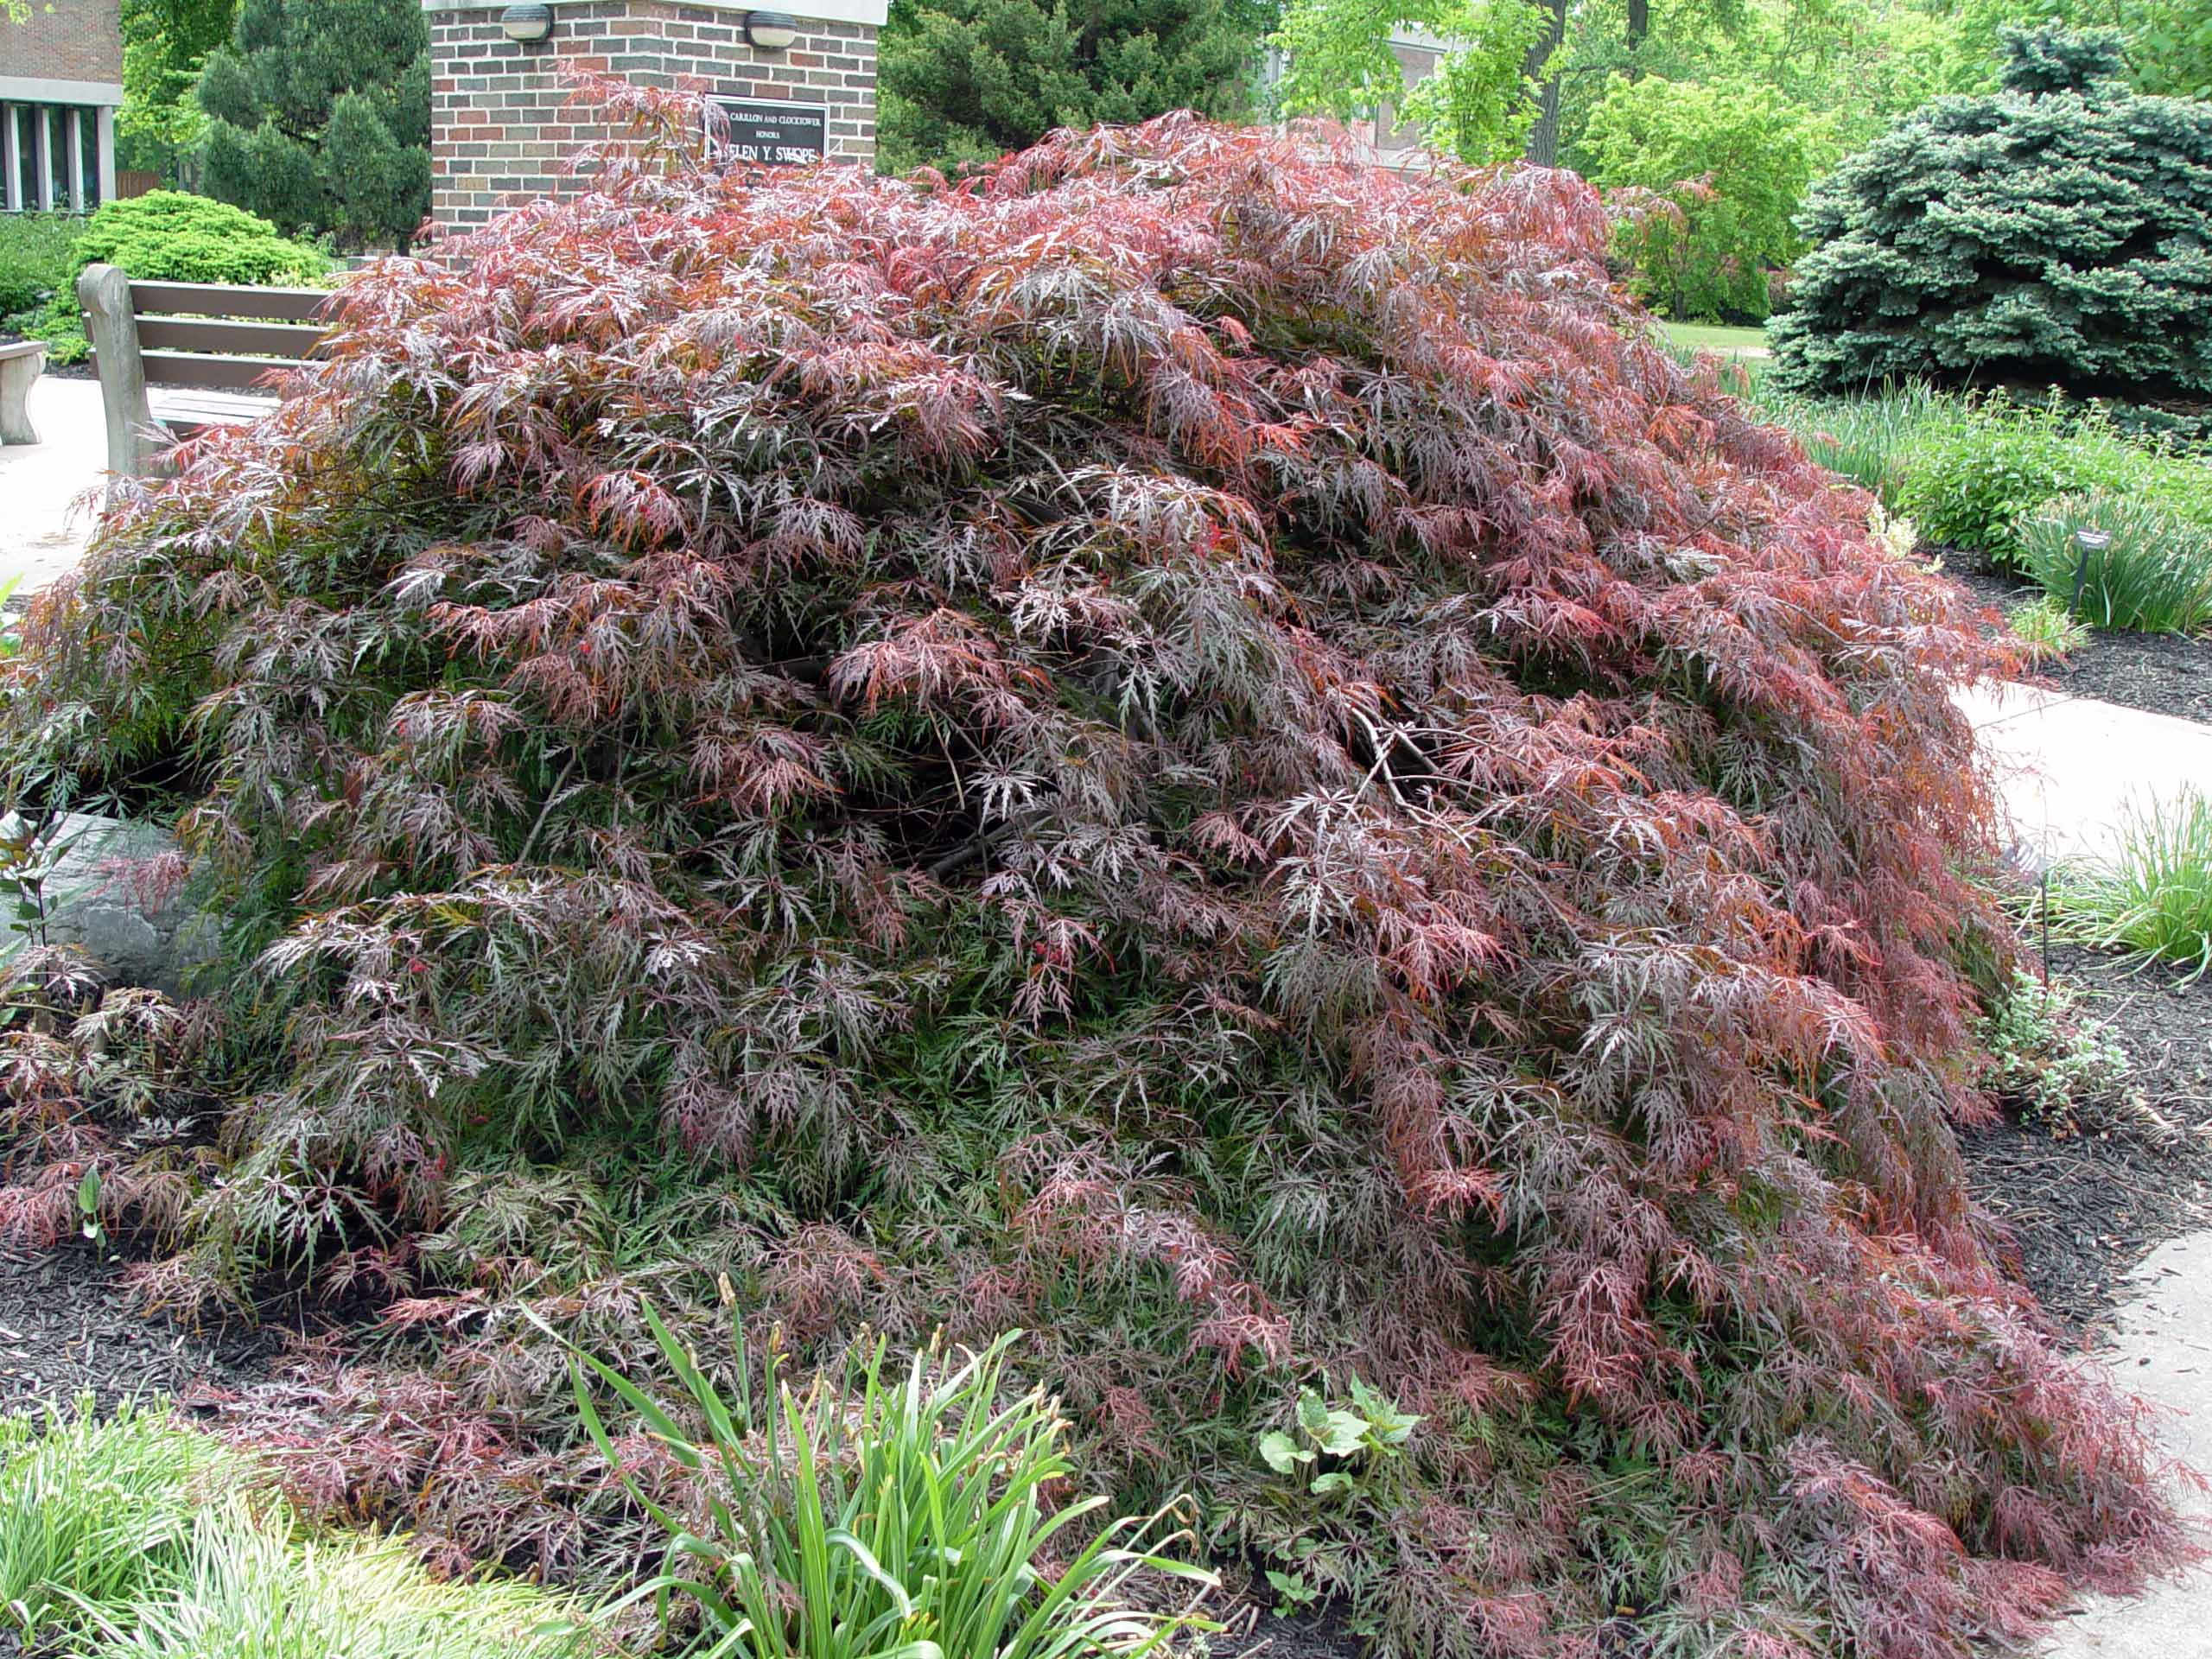 How to care for a fern leaf japanese maple - Weeping Cutleaf Japanese Maple